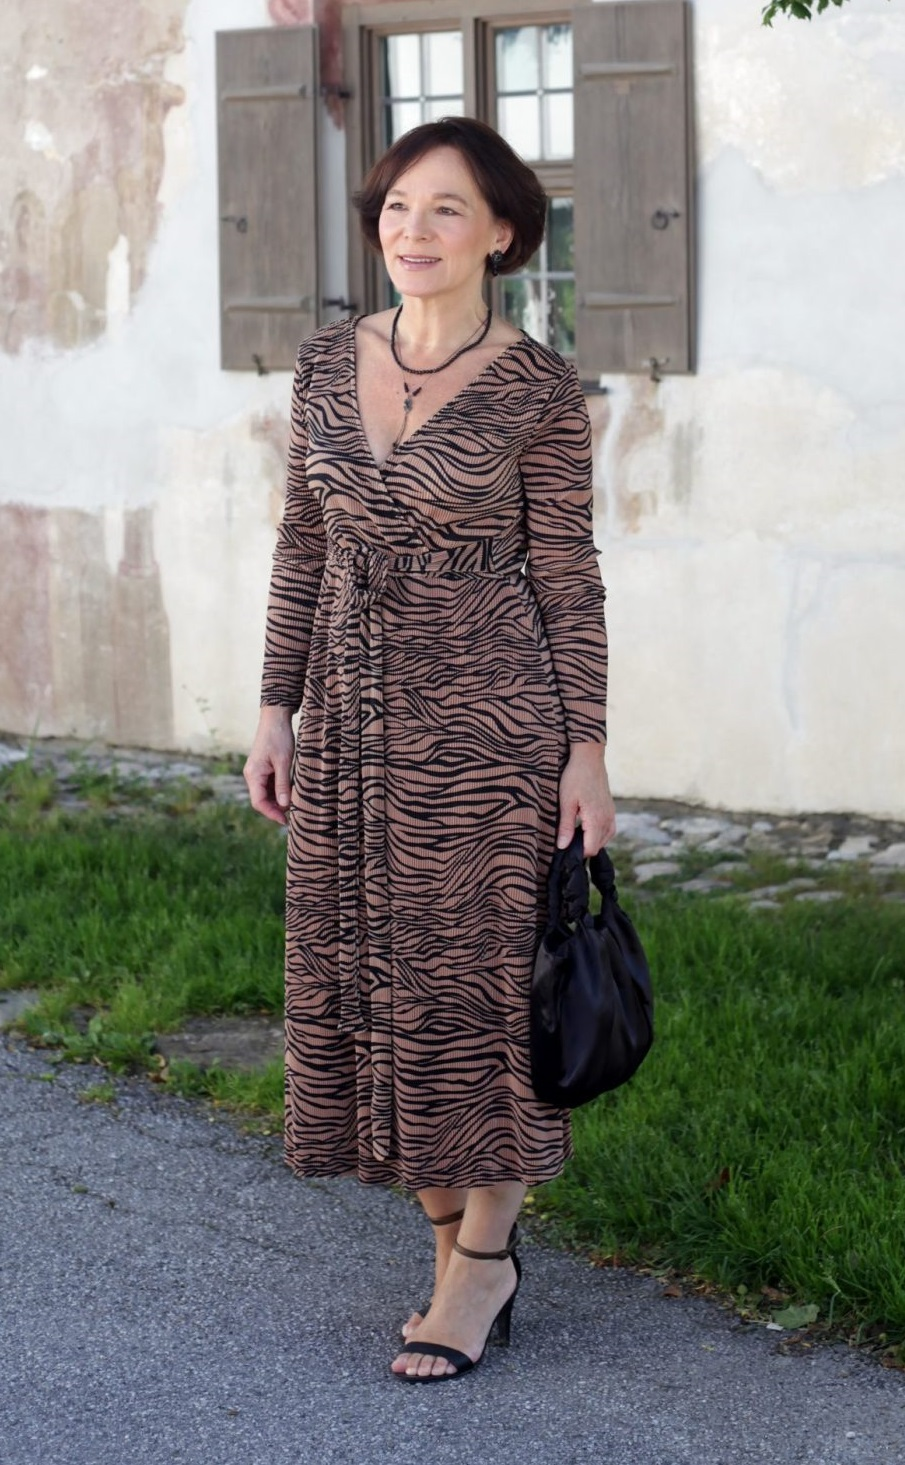 LadyofStyle About You Animal Prints Wickelkleid 50plus Blogger